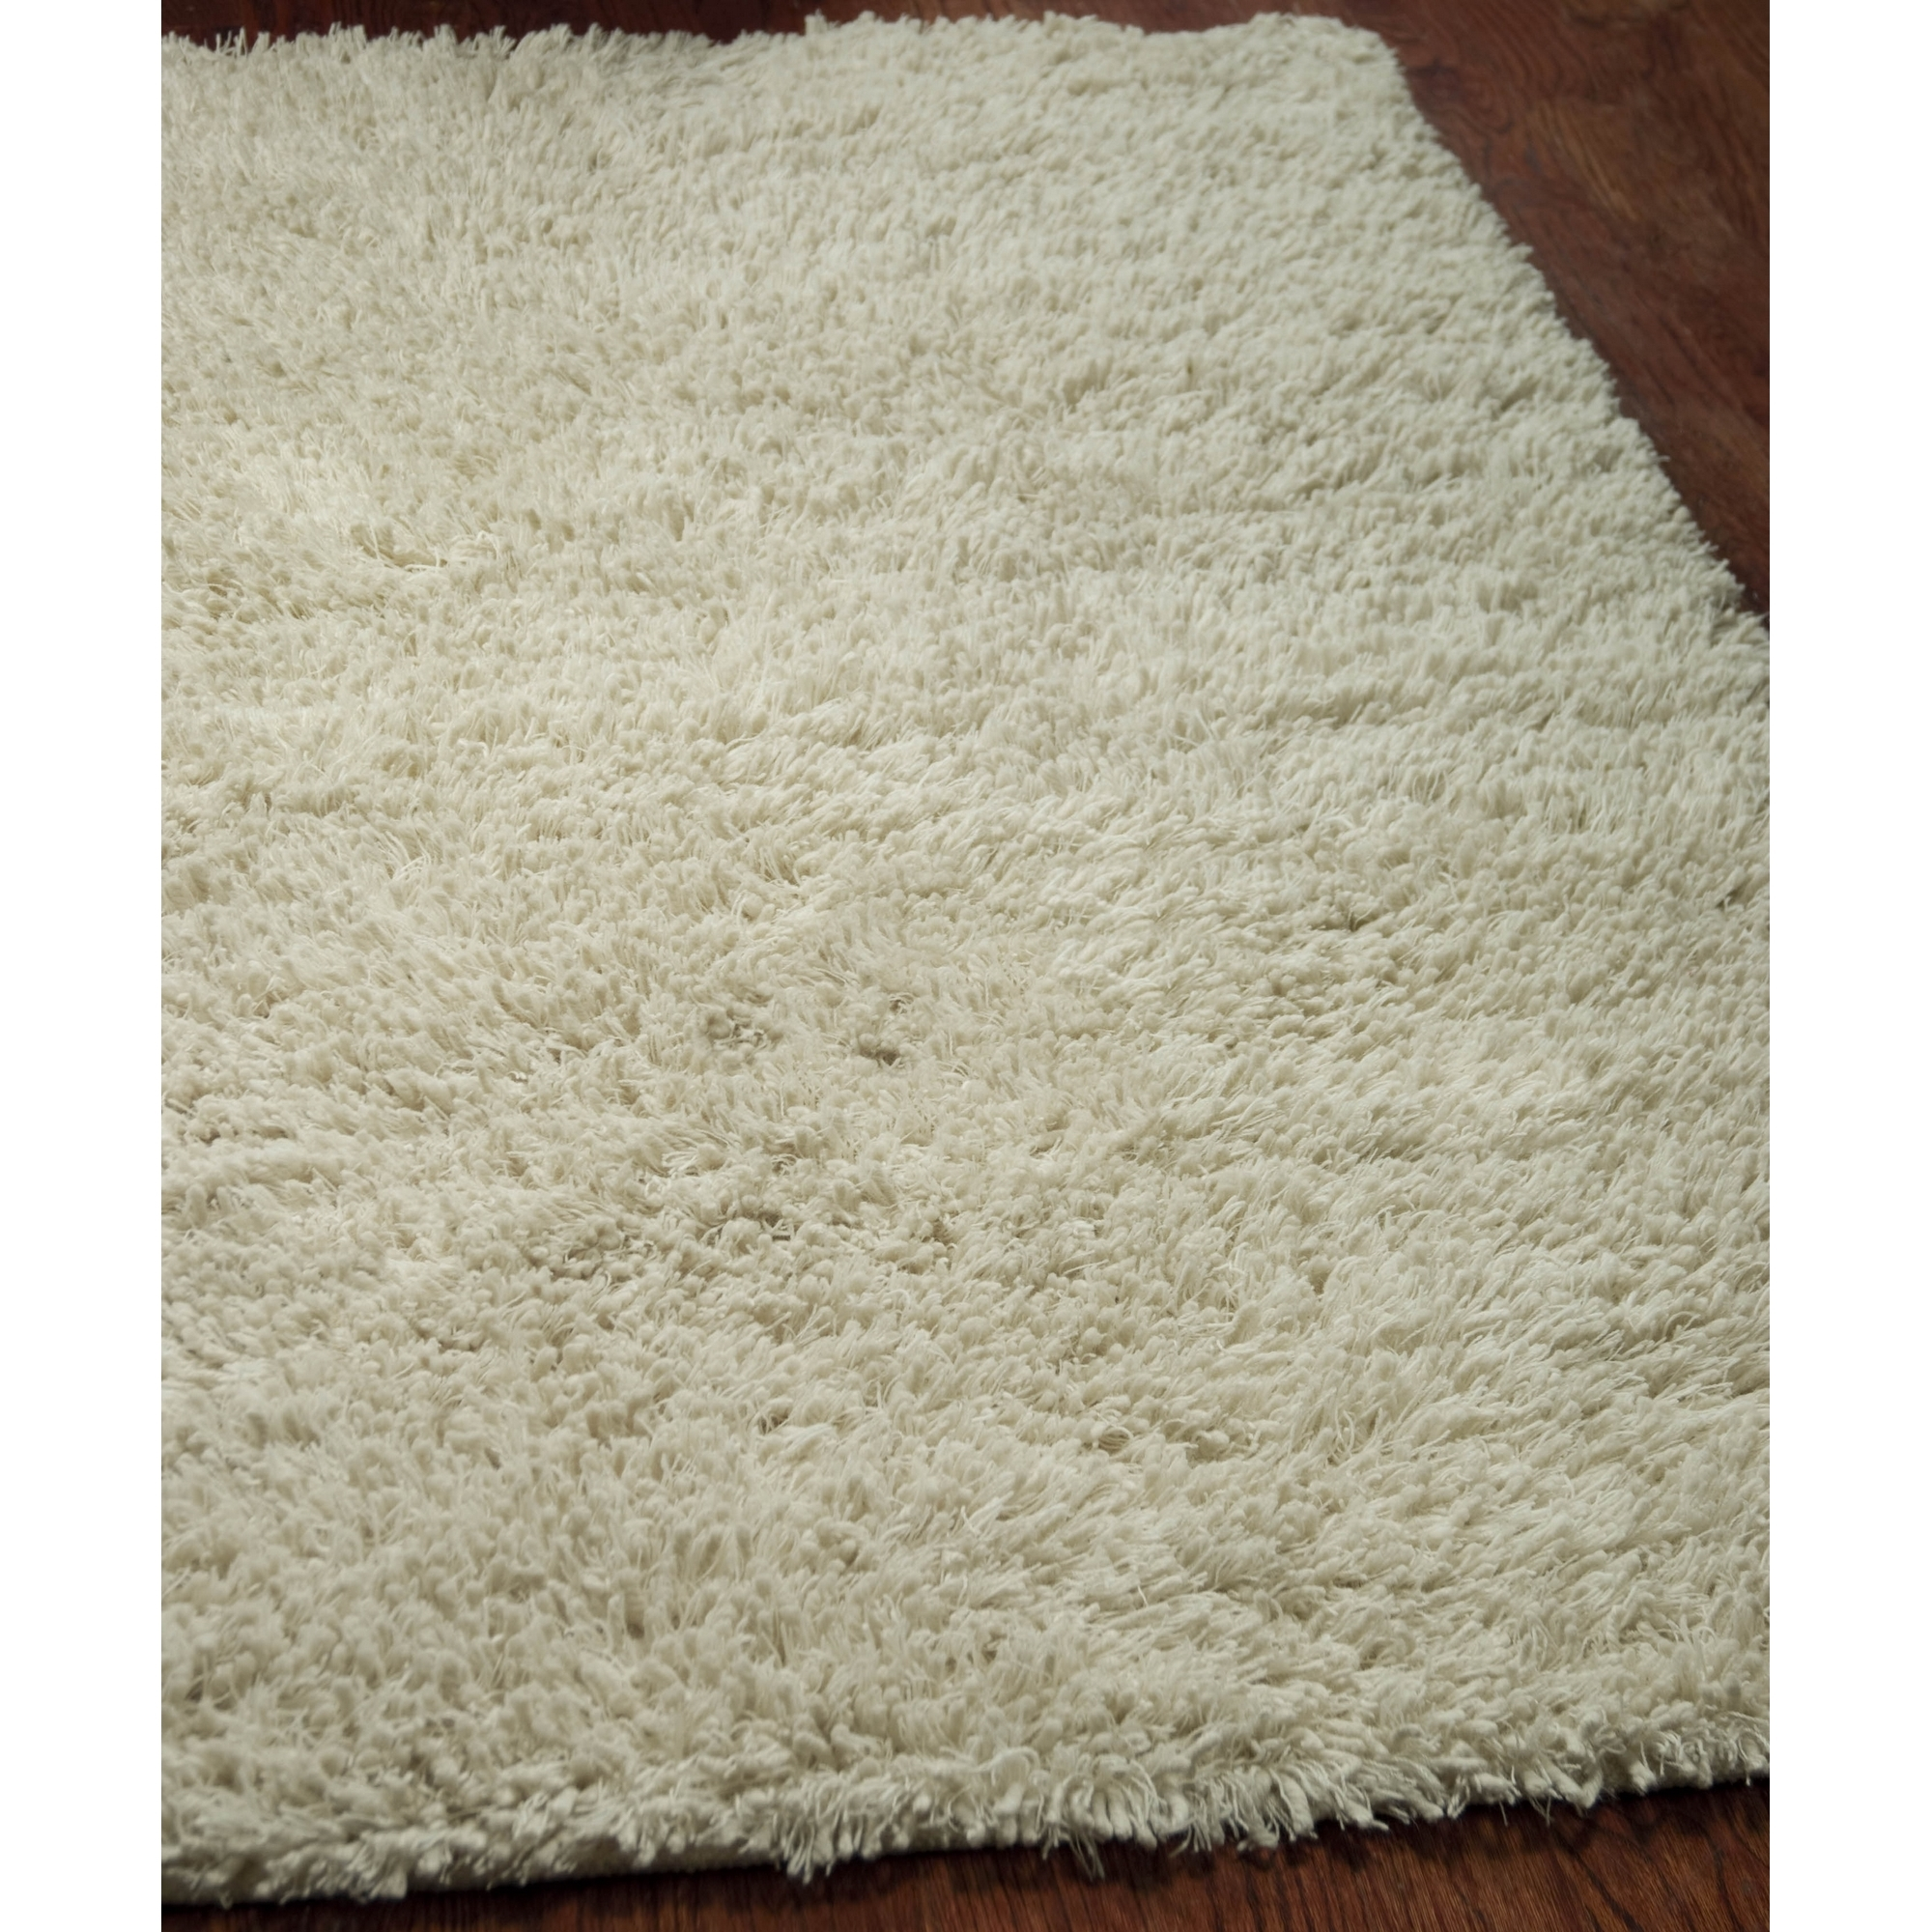 15 Best Of Wool Shag Area Rug